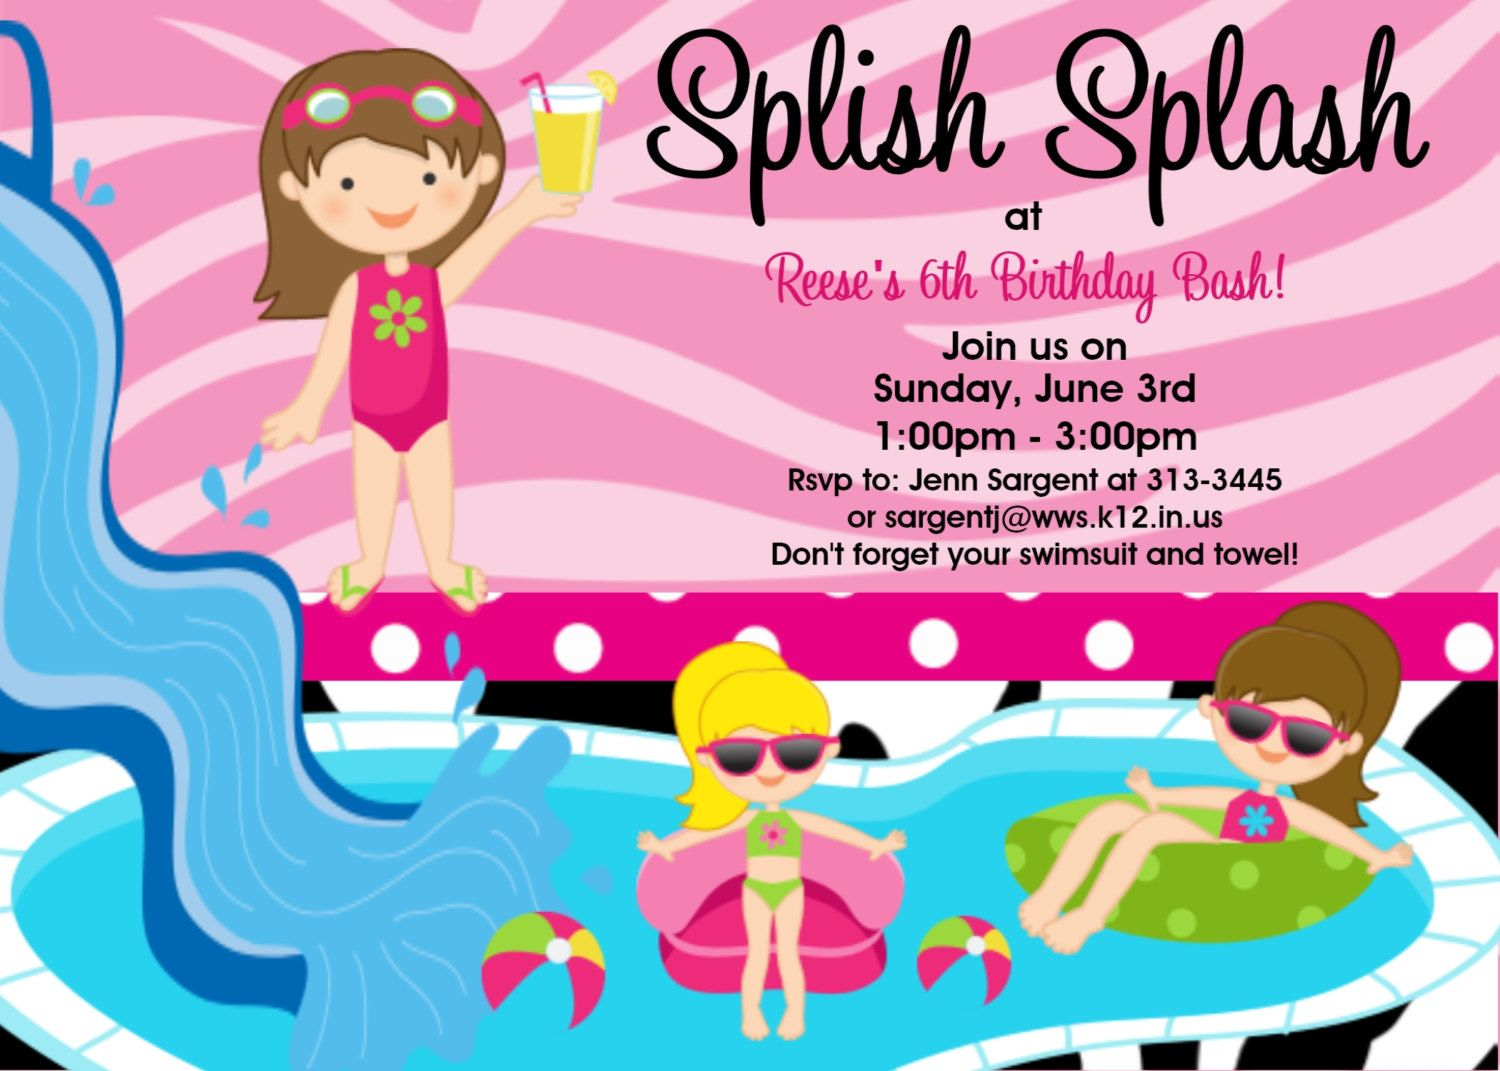 Pool Party Birthday Invitation Water Slide Birthday Invitations – Birthday Pool Party Invitation